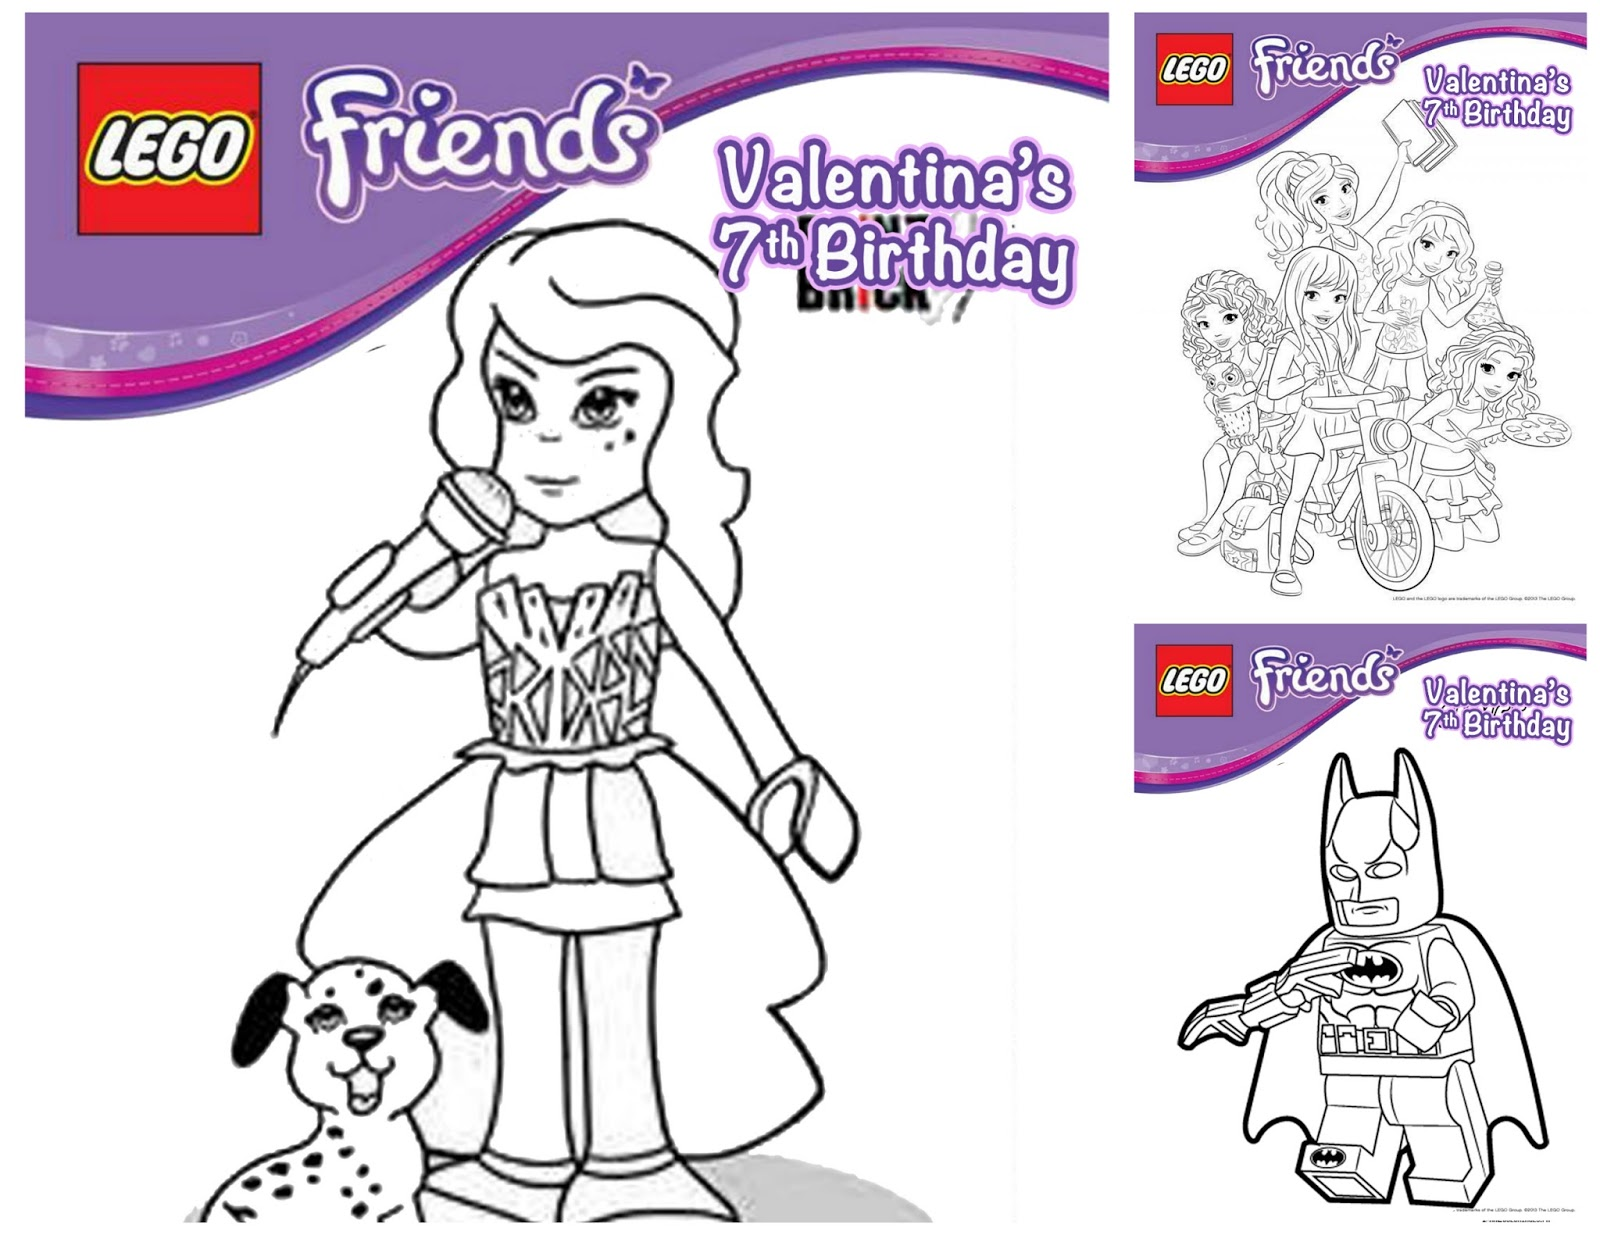 MaMa Tinas Style: Fiesta Lego Friends Party